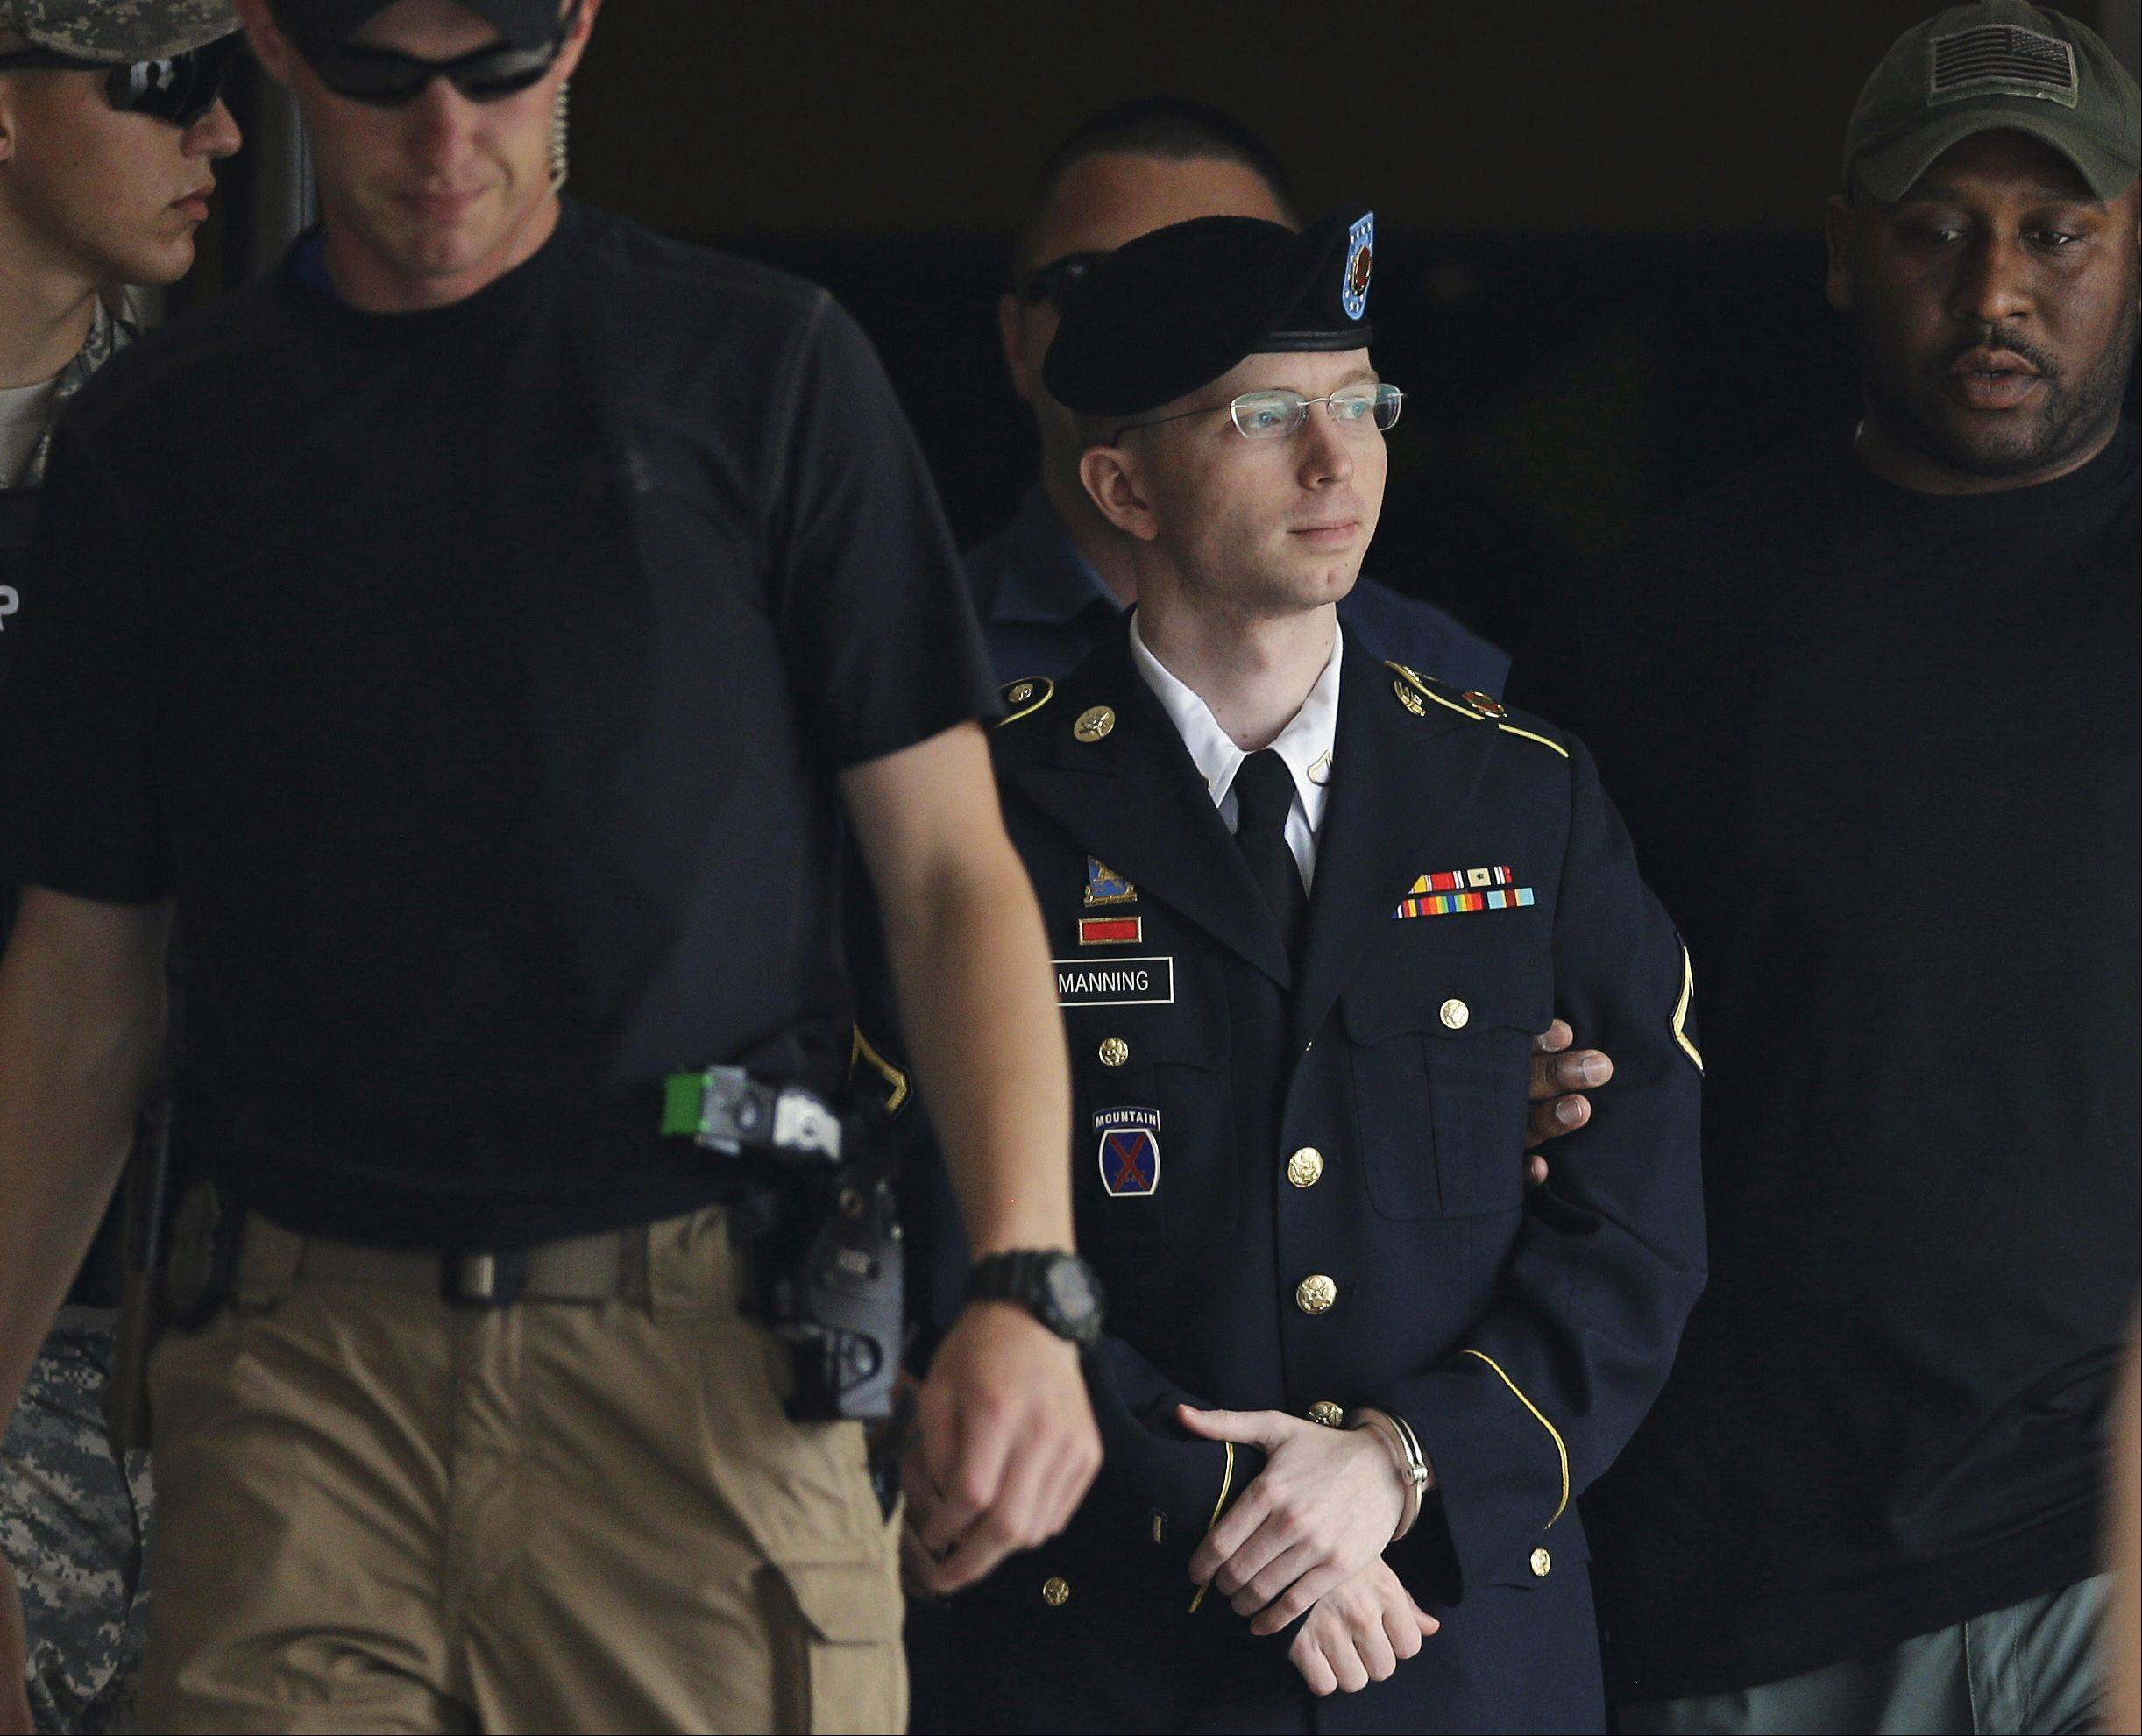 Army Pfc. Bradley Manning is escorted out of a courthouse in Fort Meade, Md., Tuesday, July 30, 2013, after receiving a verdict in his court martial. Manning was acquitted of aiding the enemy � the most serious charge he faced � but was convicted of espionage, theft and other charges, more than three years after he revealed secrets to WikiLeaks.